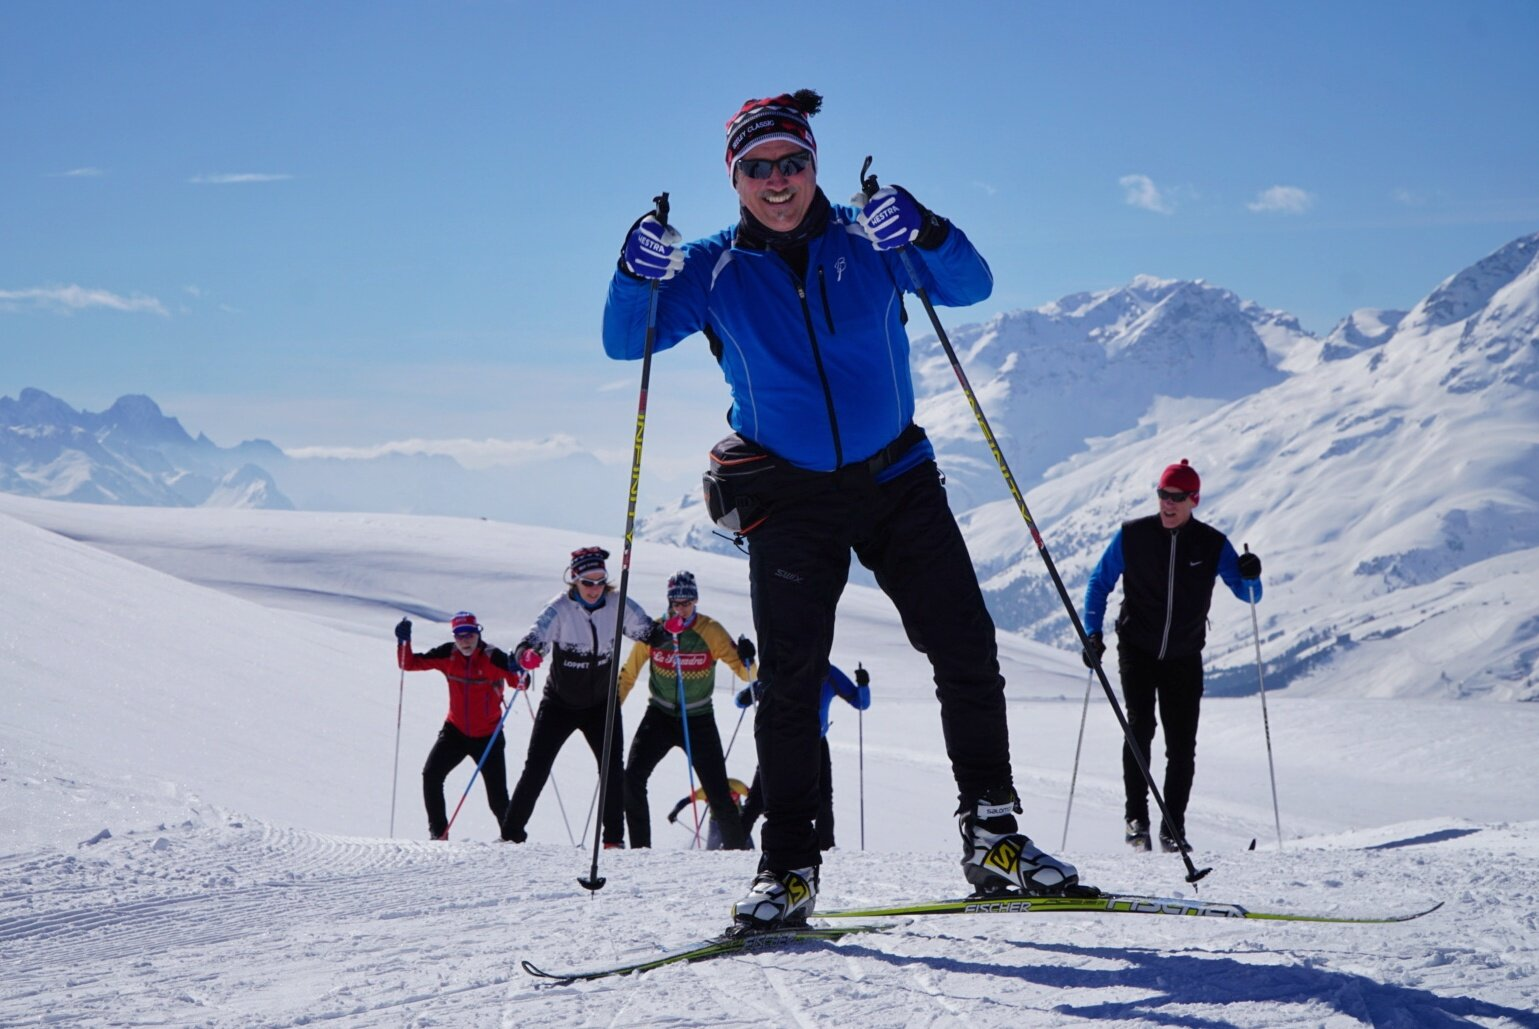 On the Engadin trip, guests skied in the 50th anniversary of the Engadin Worldloppet in St Moritz, Switzerland, plus many other trails in the week before the event.